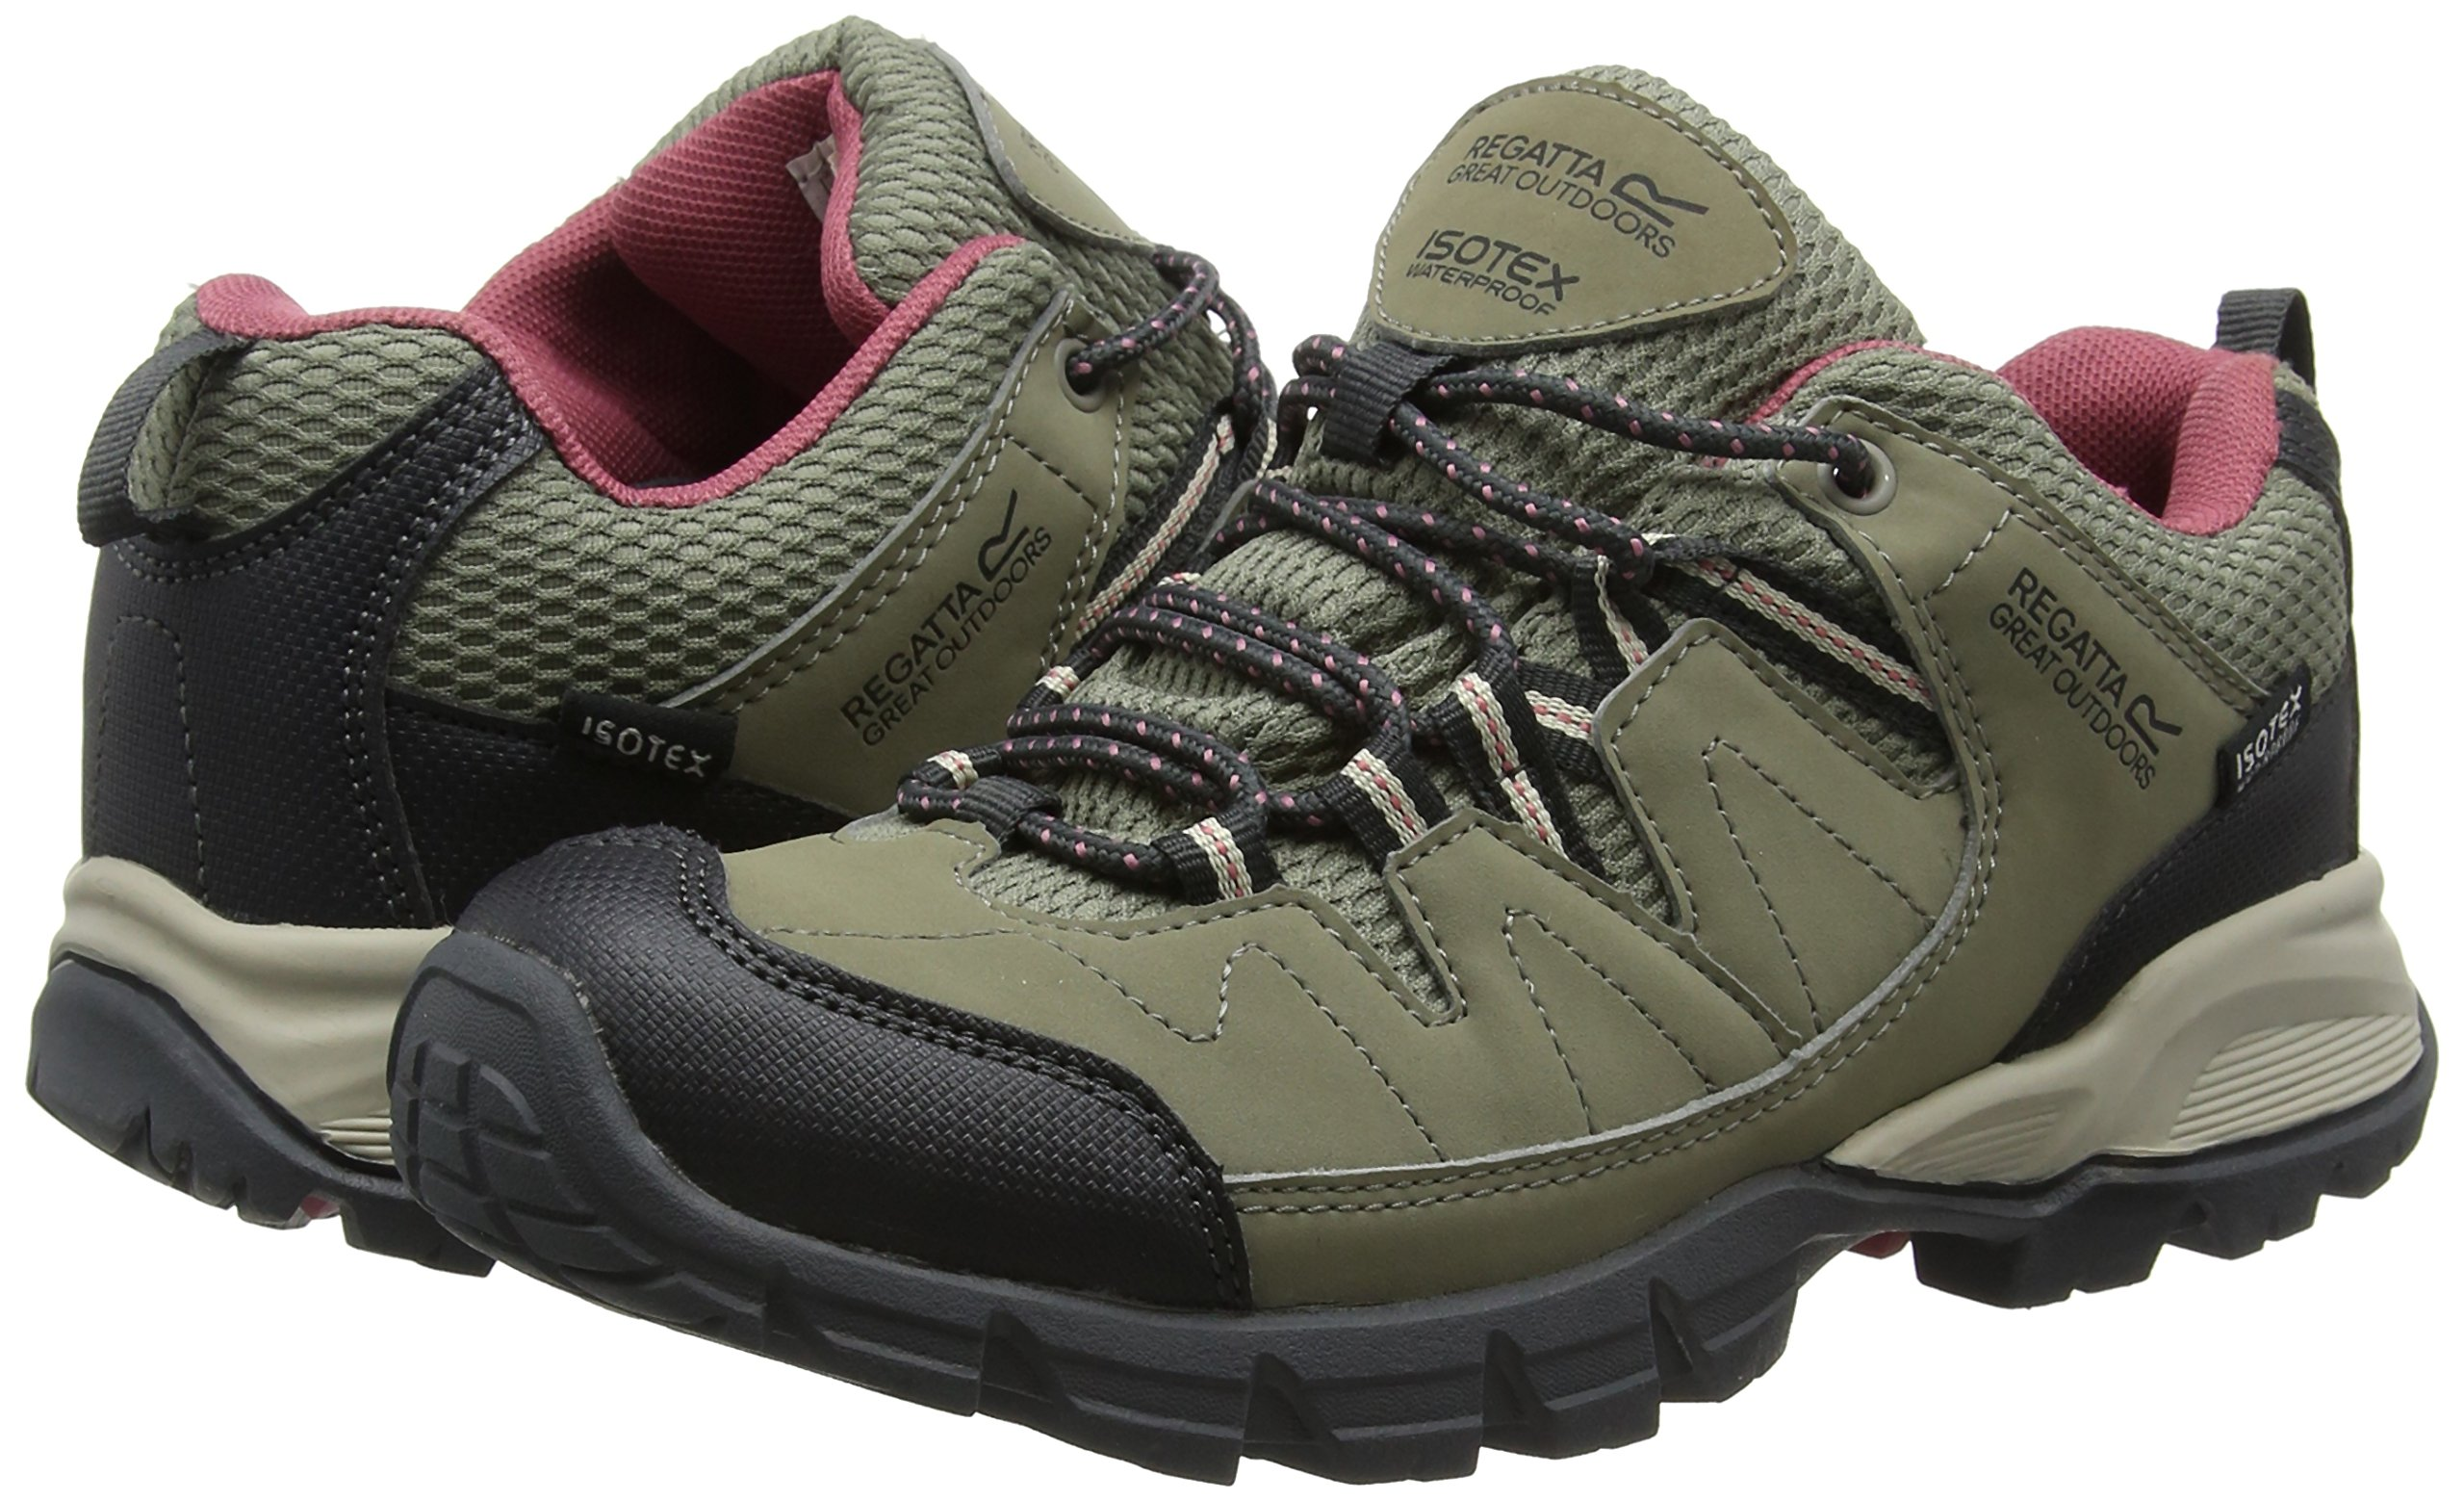 Regatta Lady Holcombe, Women's Low Rise Hiking Shoes 5